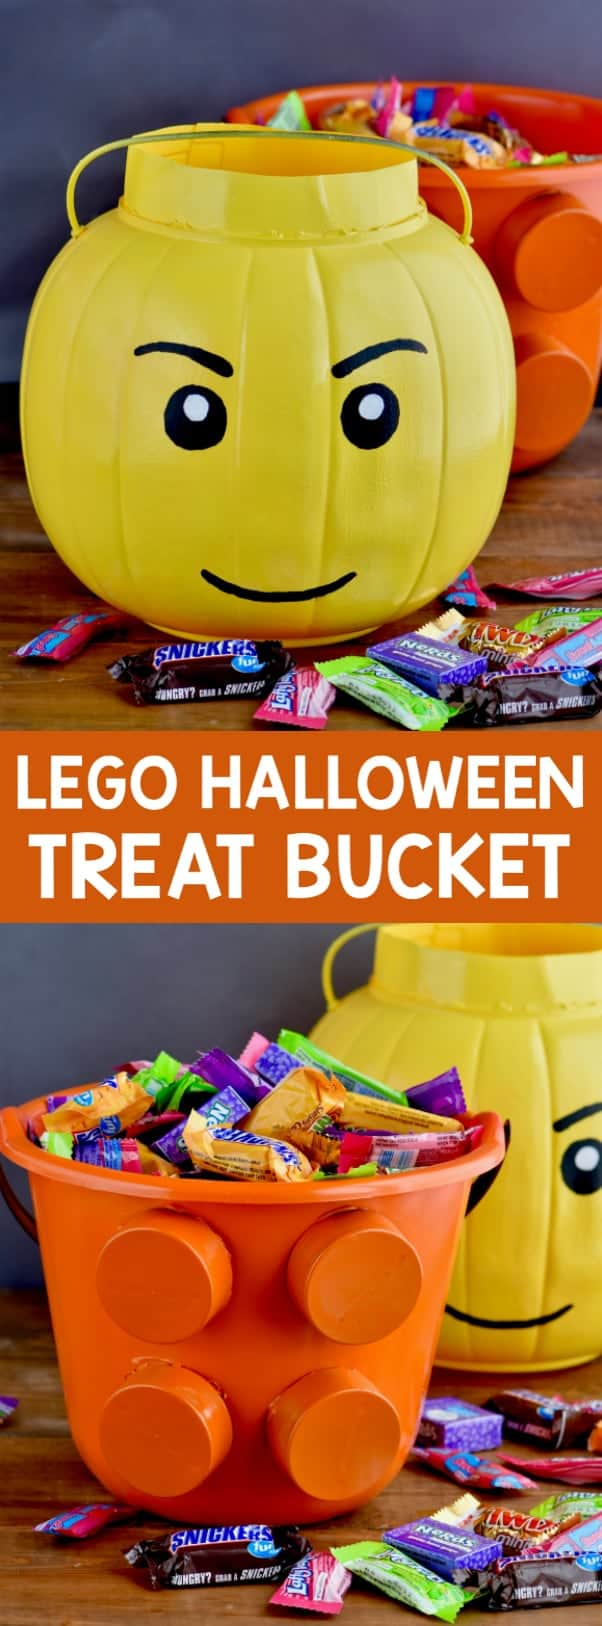 Two Halloween Treat Buckets: one shaped as a lego man head and the other into a lego piece.